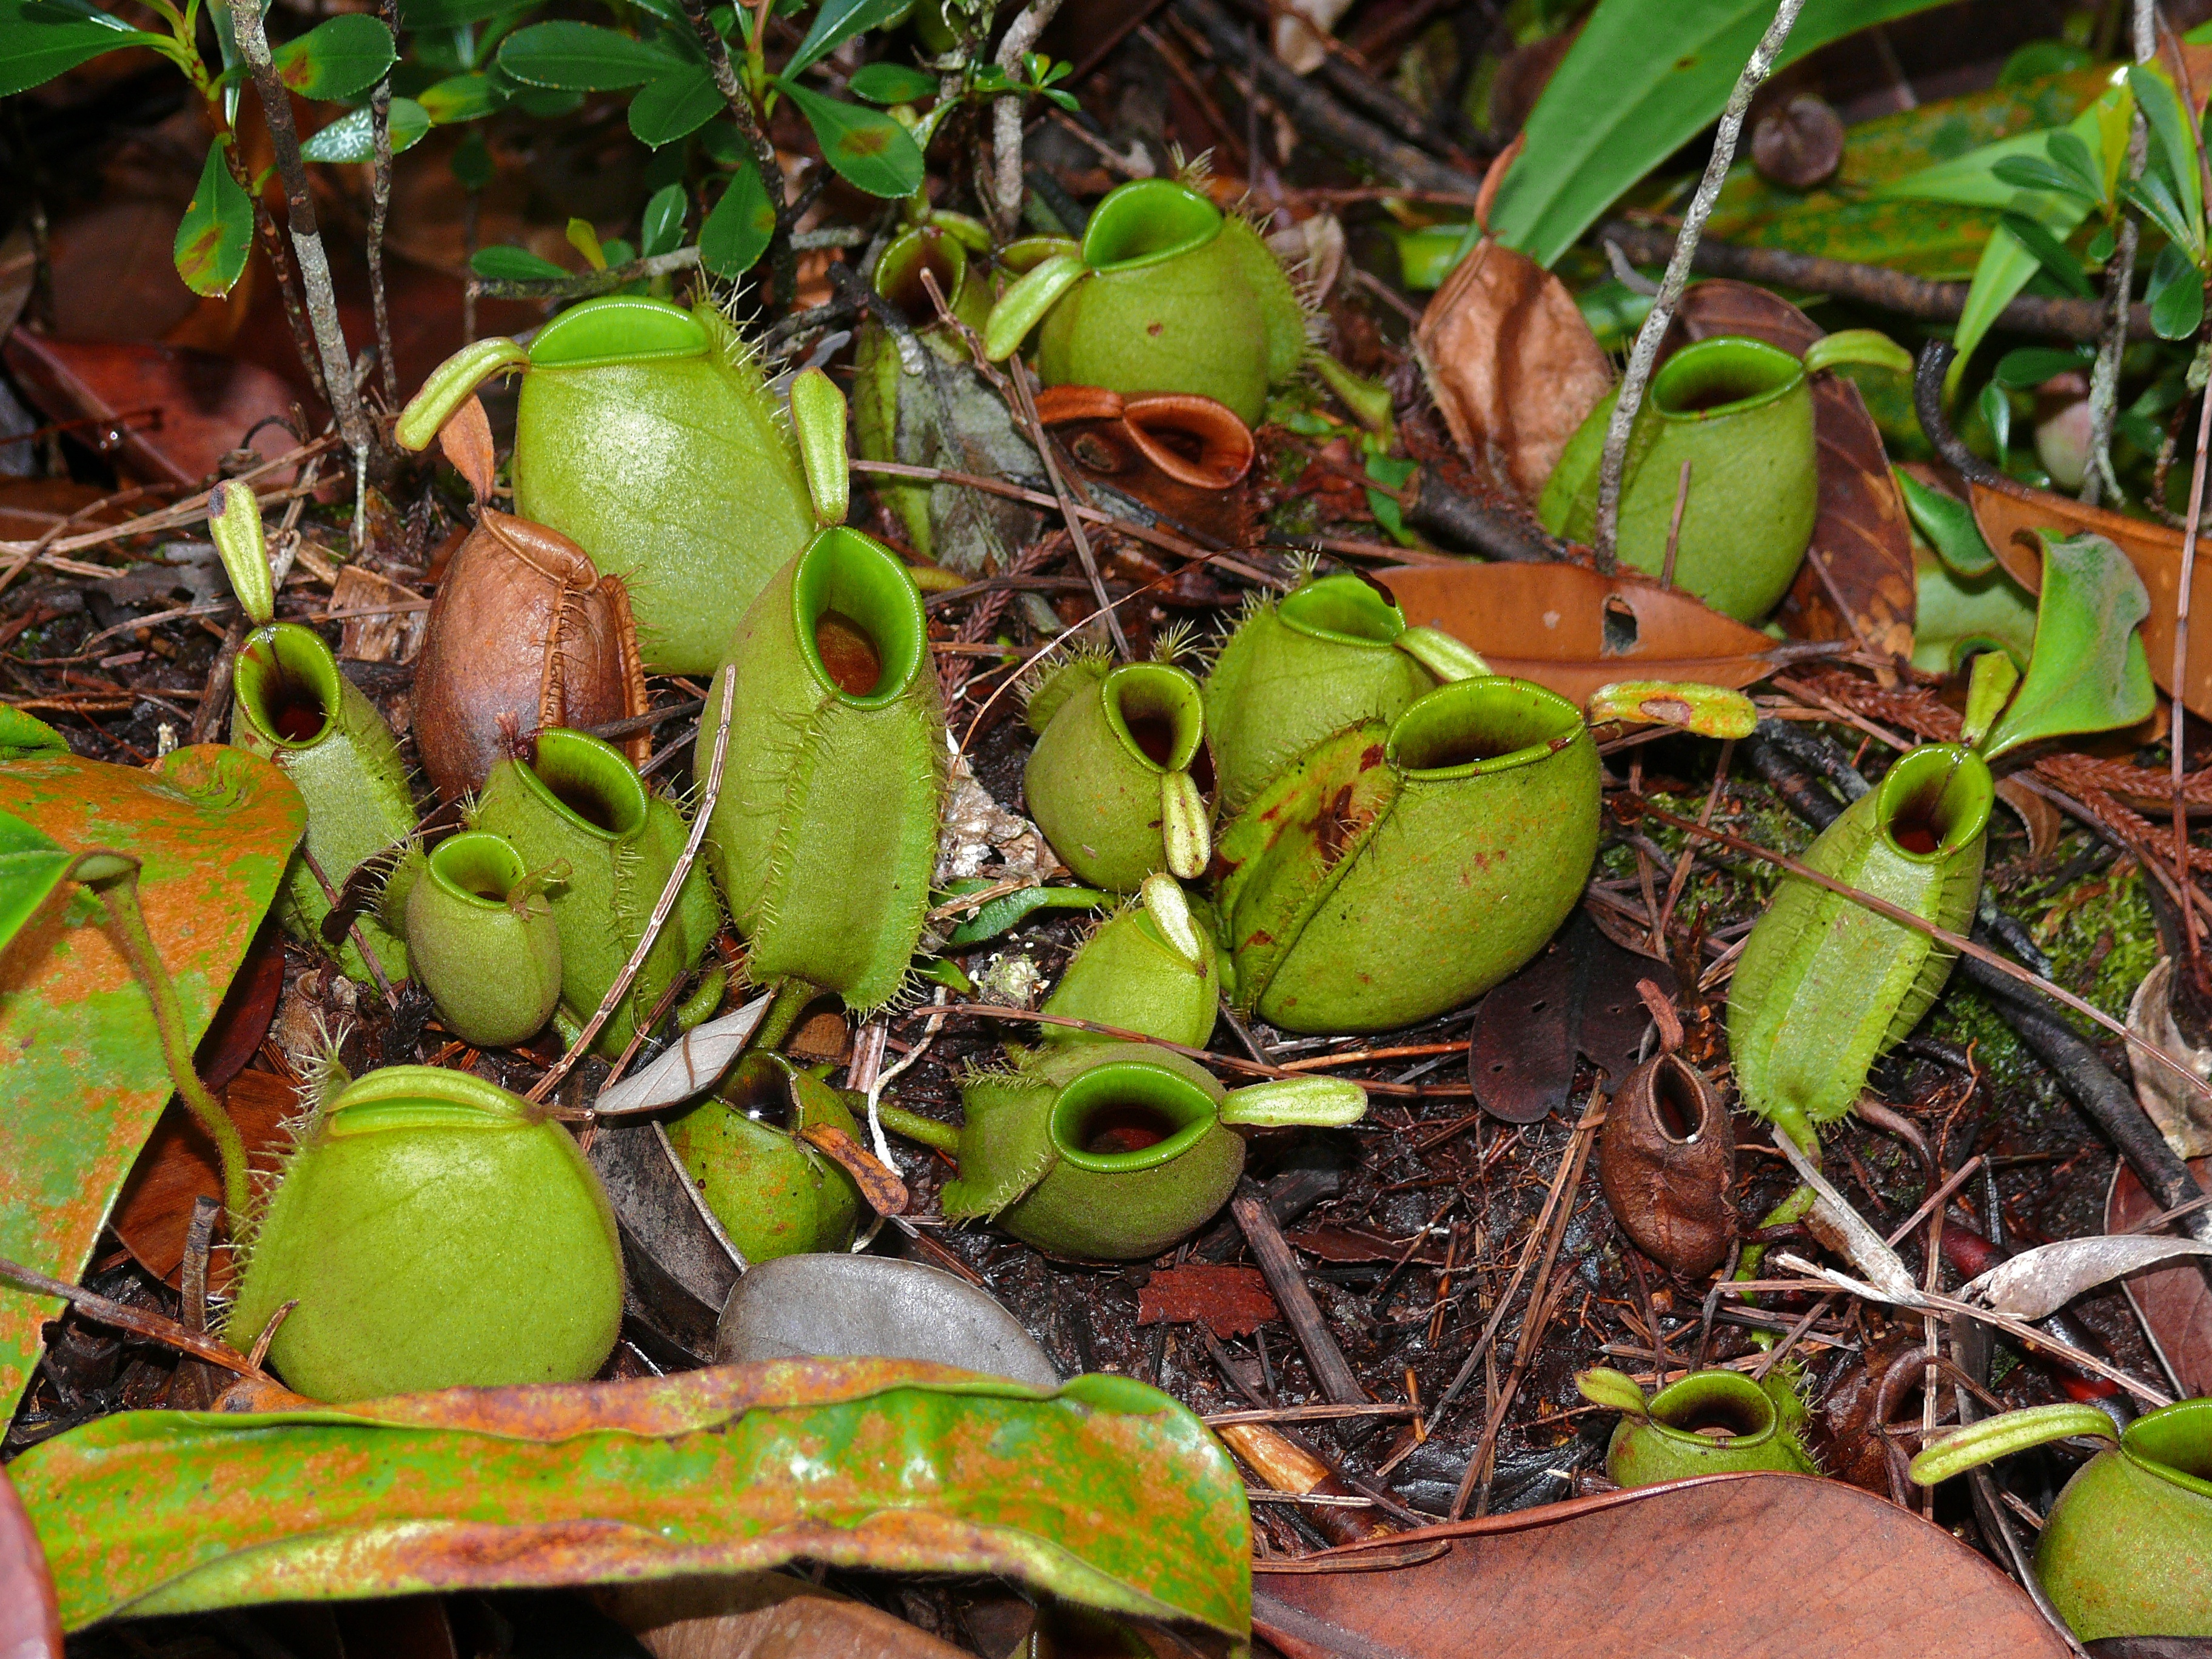 FilePitcher Plants Nepenthes ampullaria 6707412937jpg 3648x2736